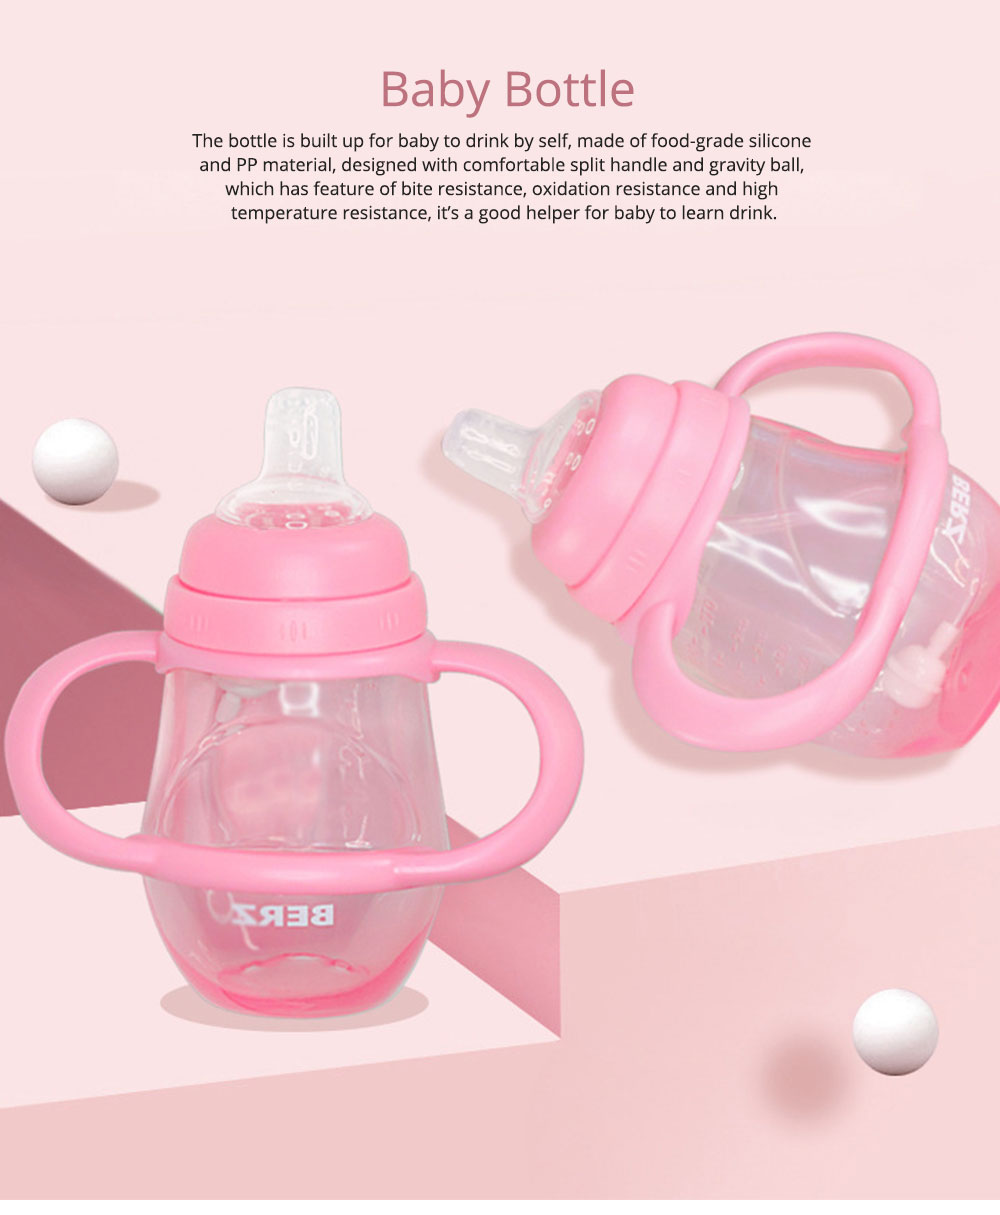 Silicone PP Material Bottle with Handle, Drop-proof Glass Bite-resistance Nipple for 6-18 Month Baby Cup 0